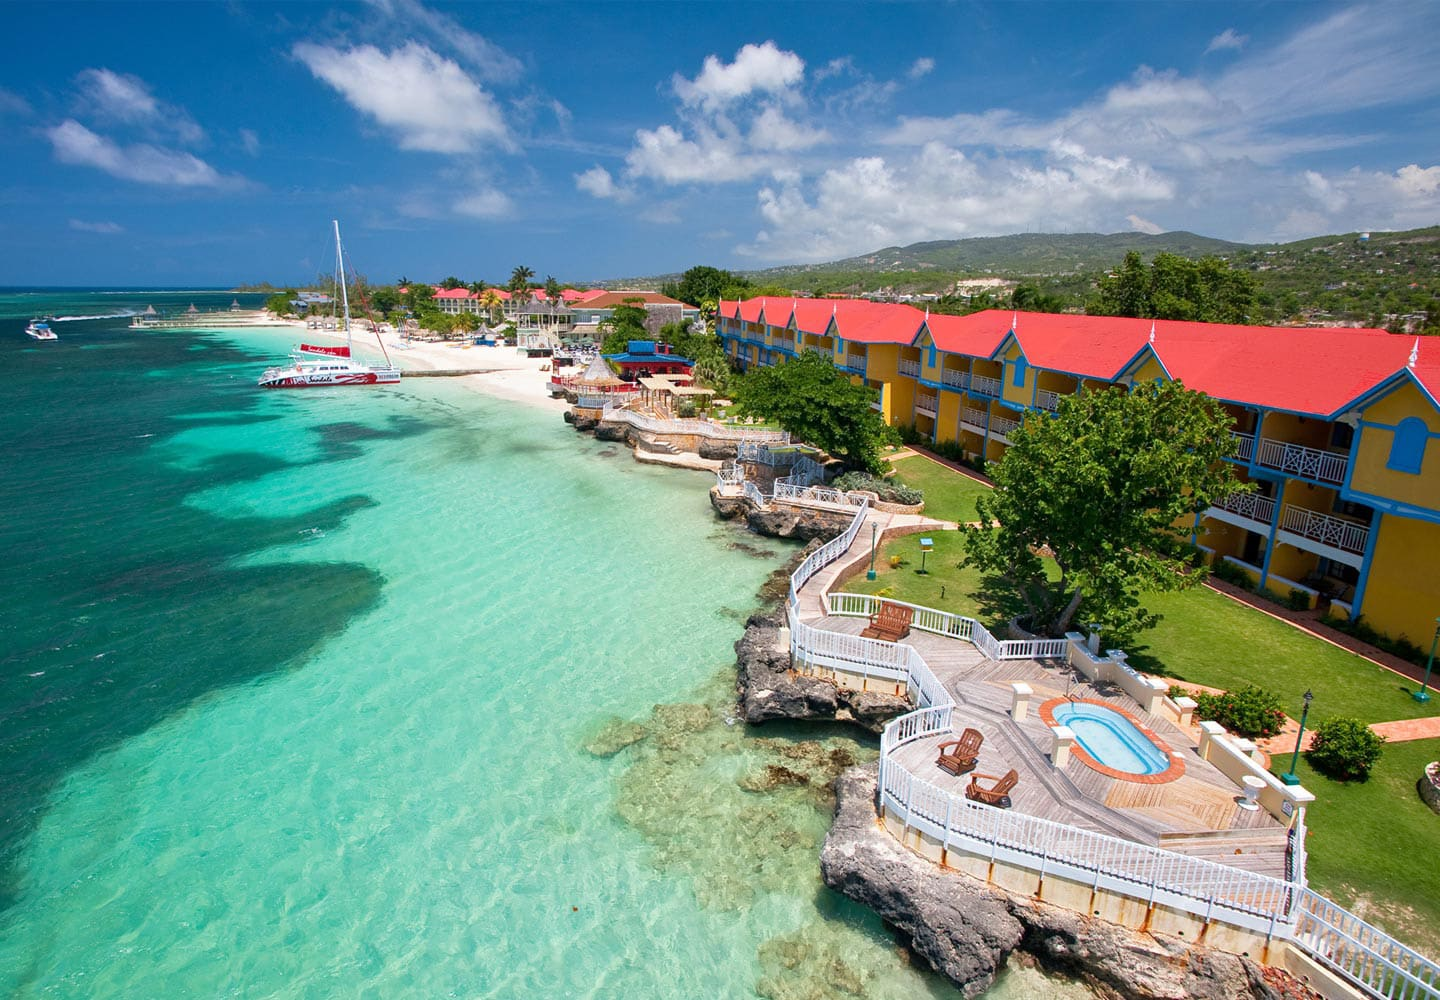 bird eye view of the Sandals Montego Bay resort in Jamaica